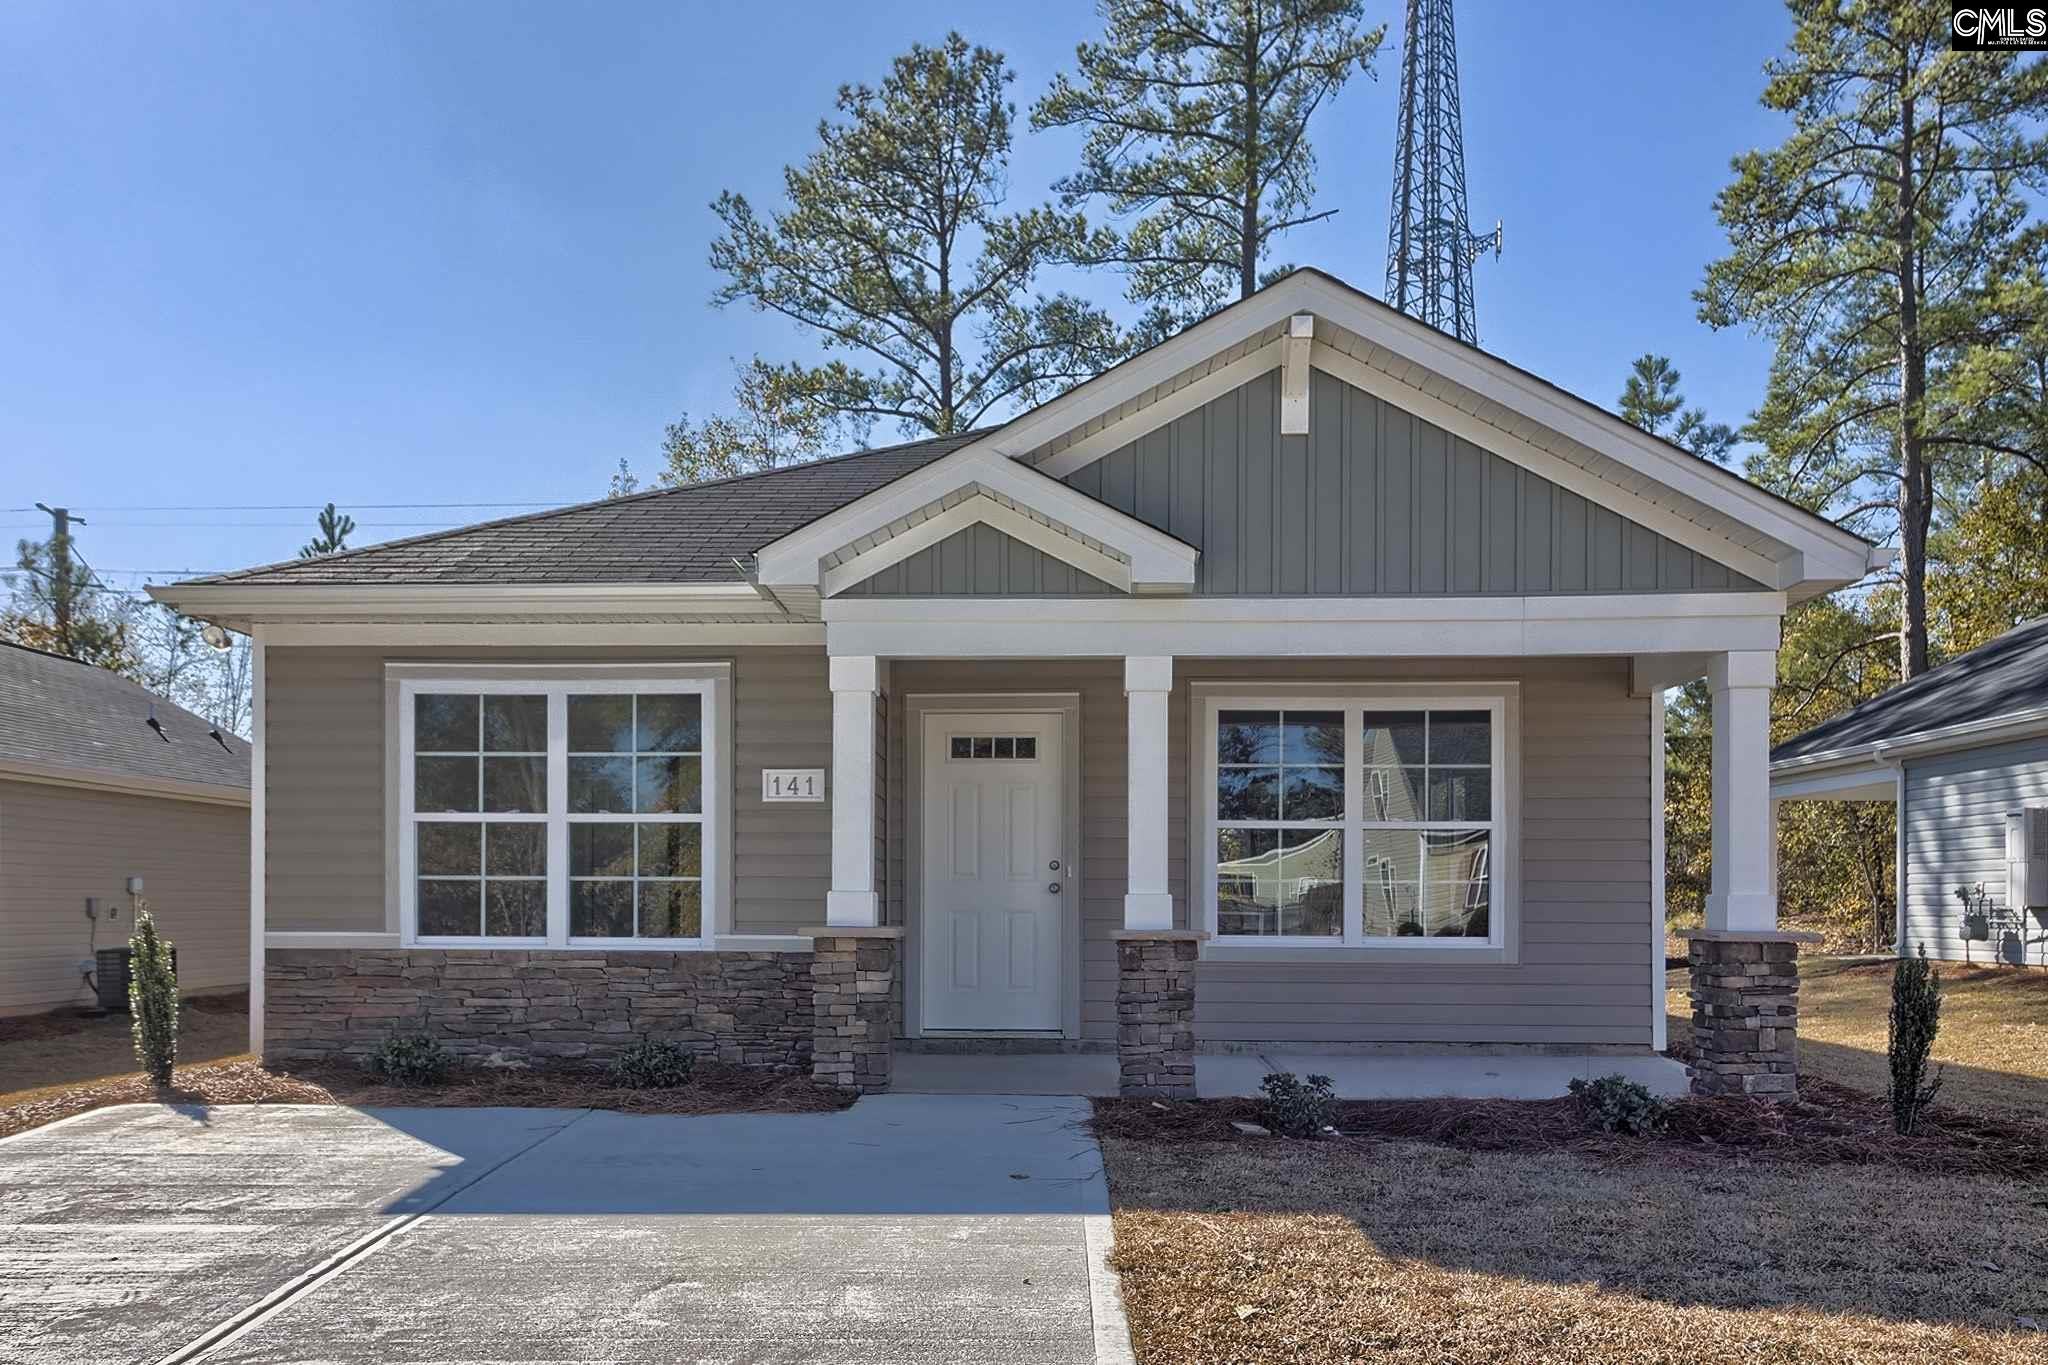 145 Weeping Willow Blythewood, SC 29016